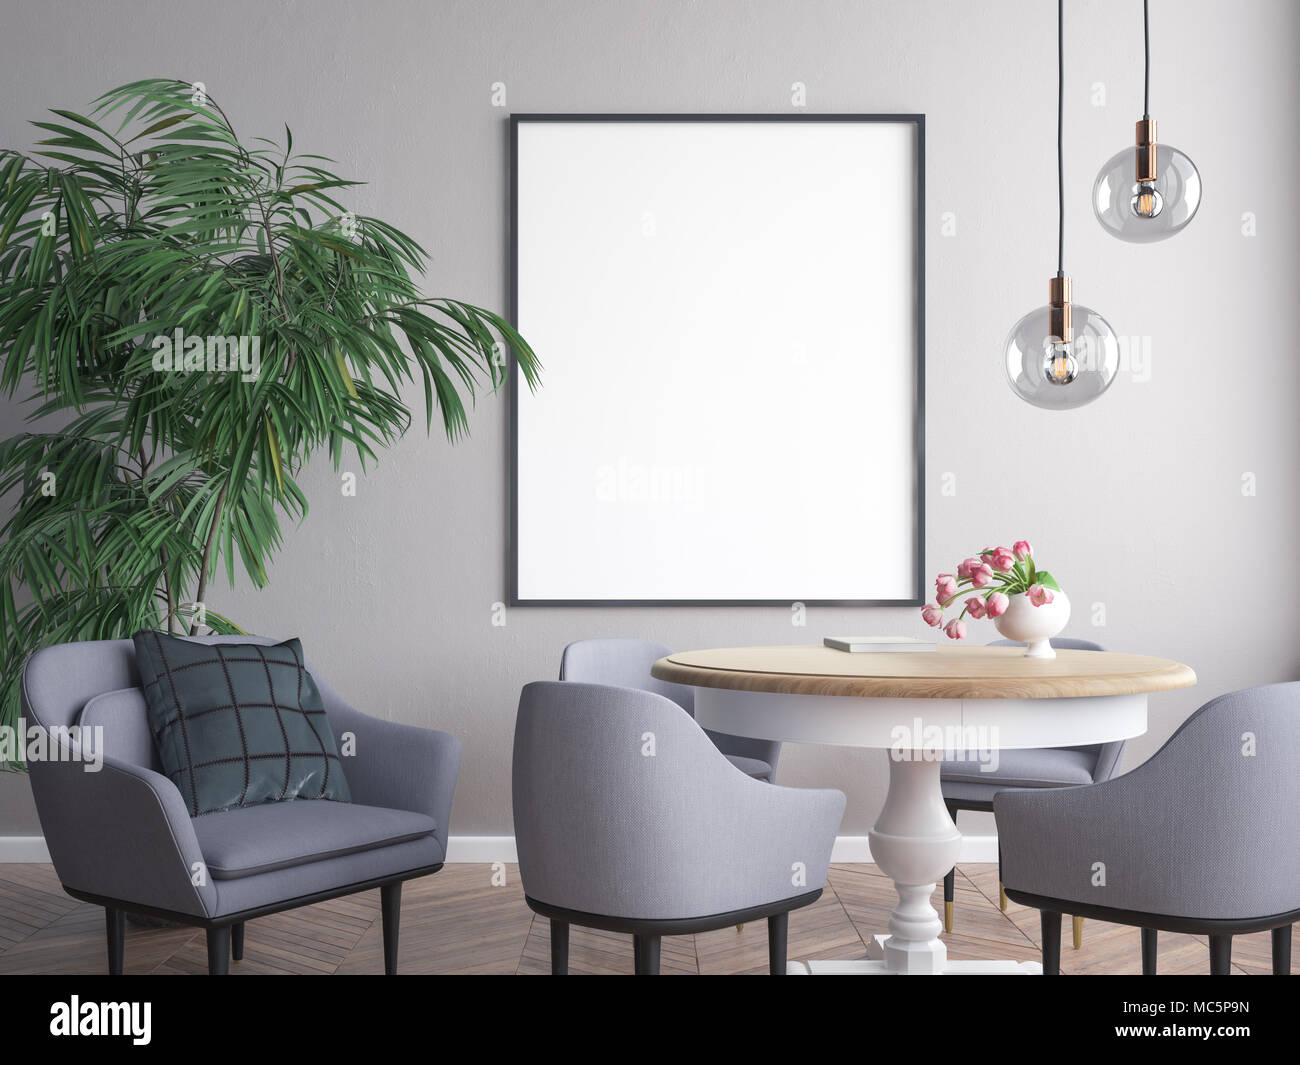 Mockup poster in the interior d illustration of a modern design